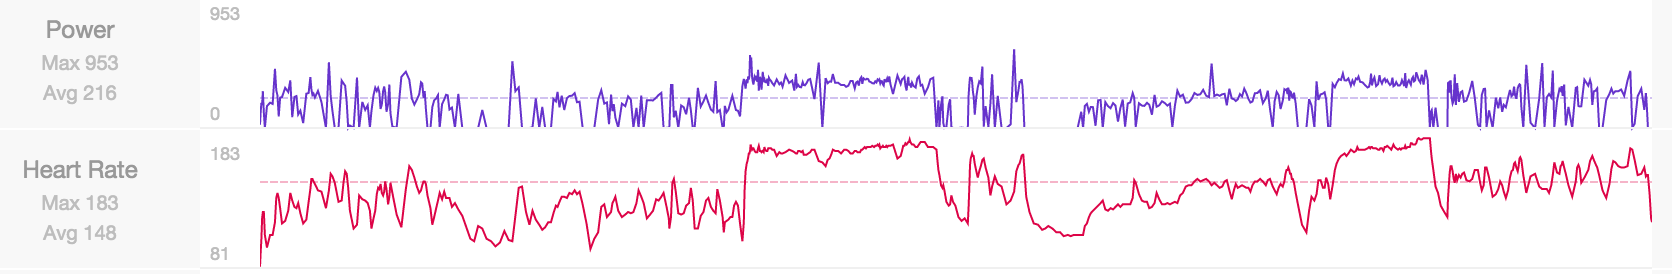 How To Use A Heart Rate Monitor - Pursue the Podium